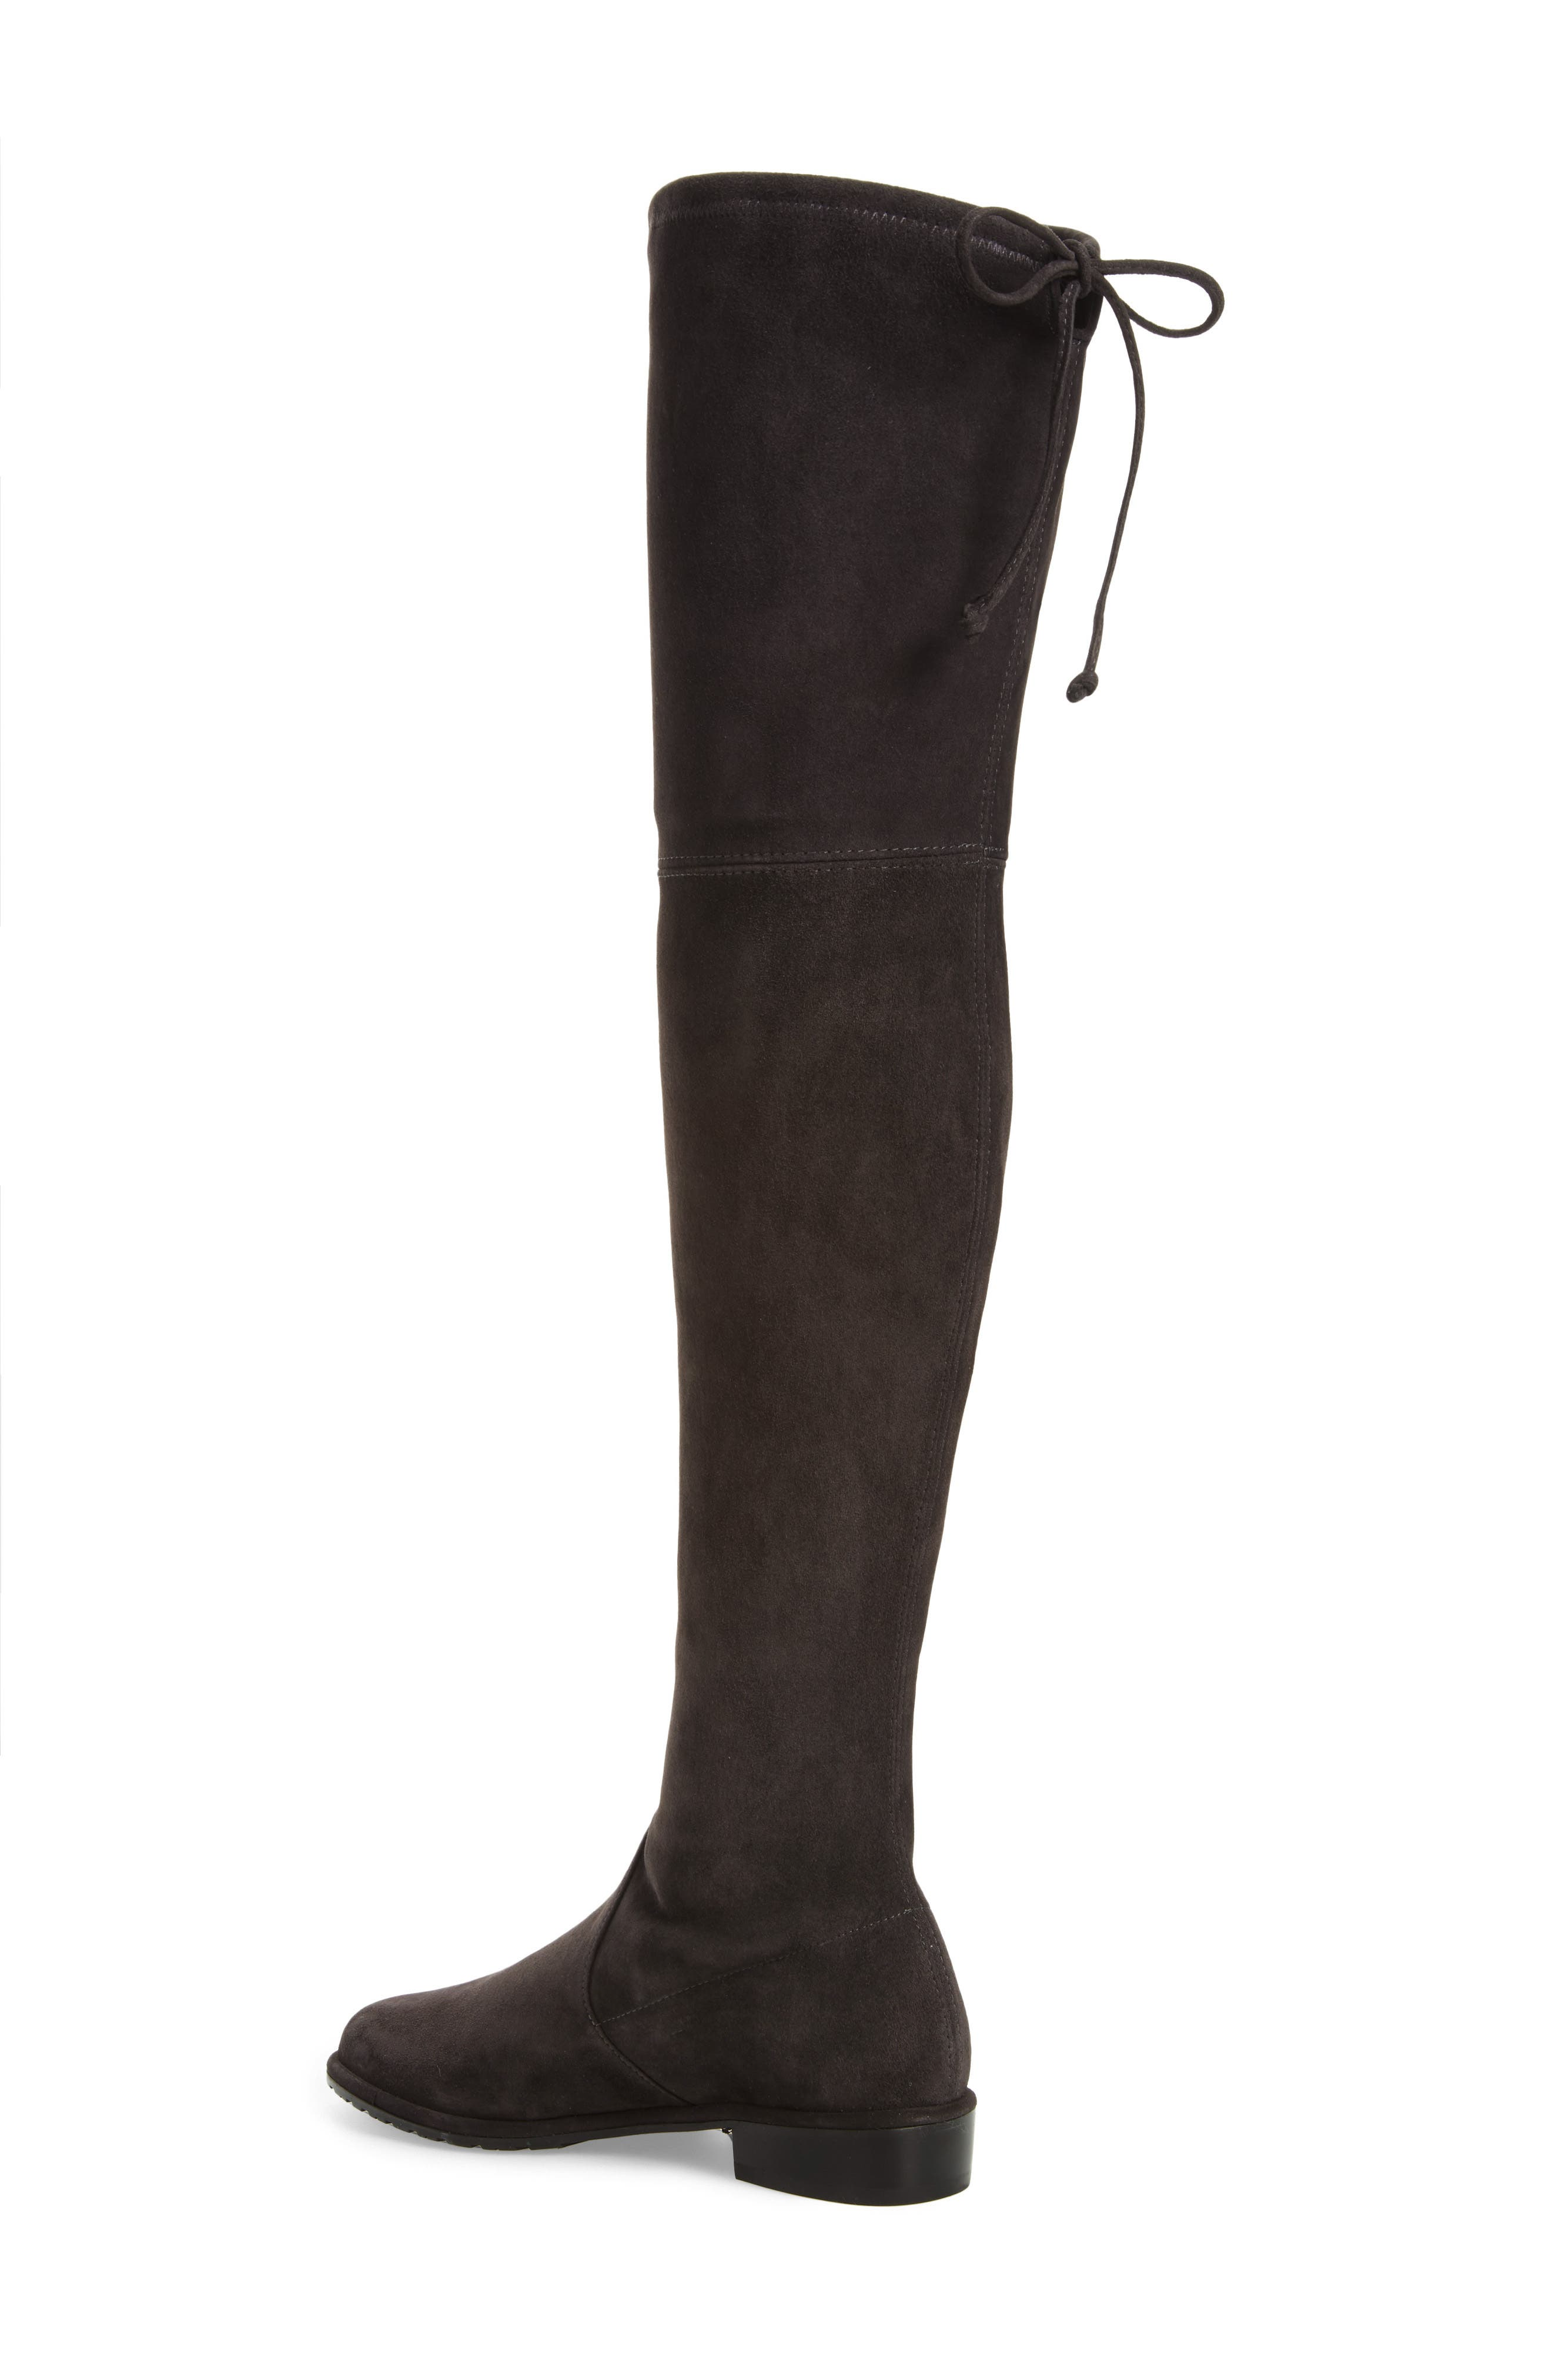 'Lowland' Over the Knee Boot,                             Alternate thumbnail 2, color,                             ASPHALT SUEDE